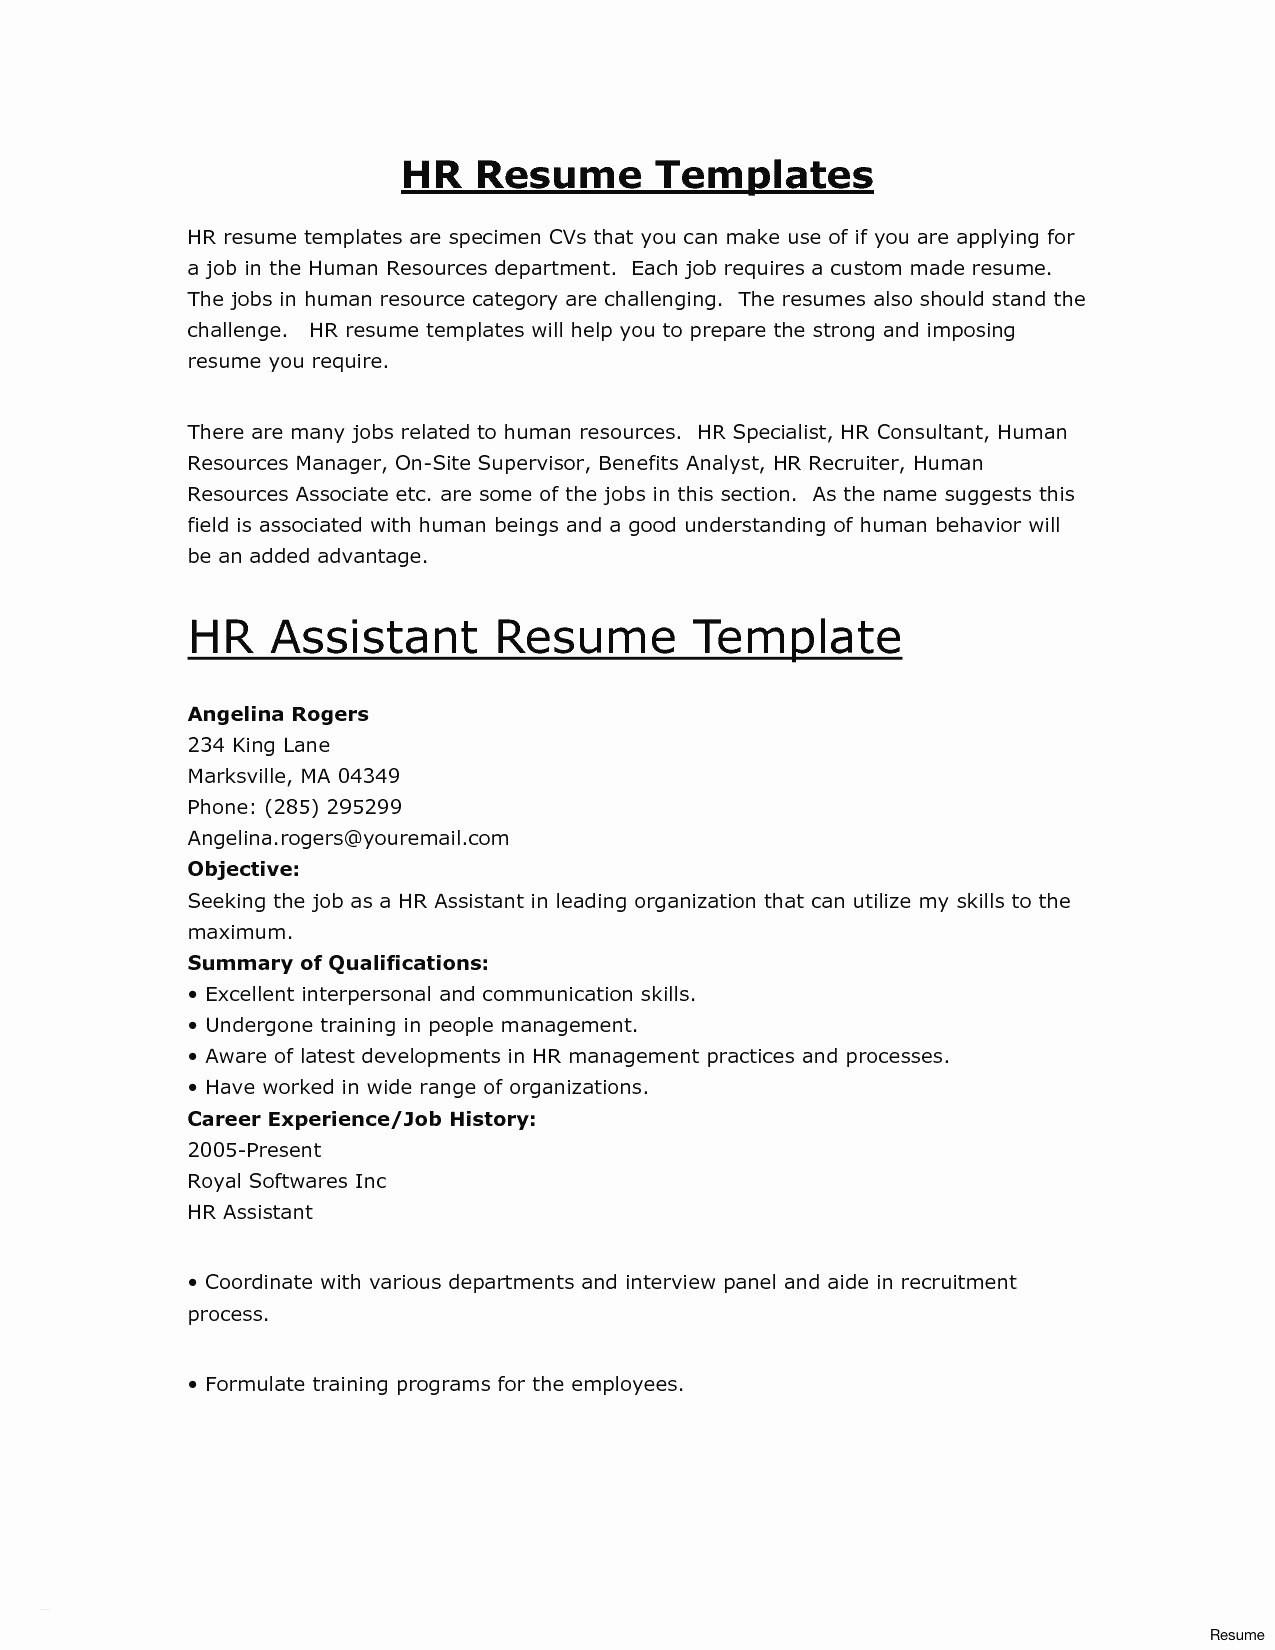 Microsoft Word Templates Resume - where are Resume Templates In Word Fresh Microsoft Word Resume